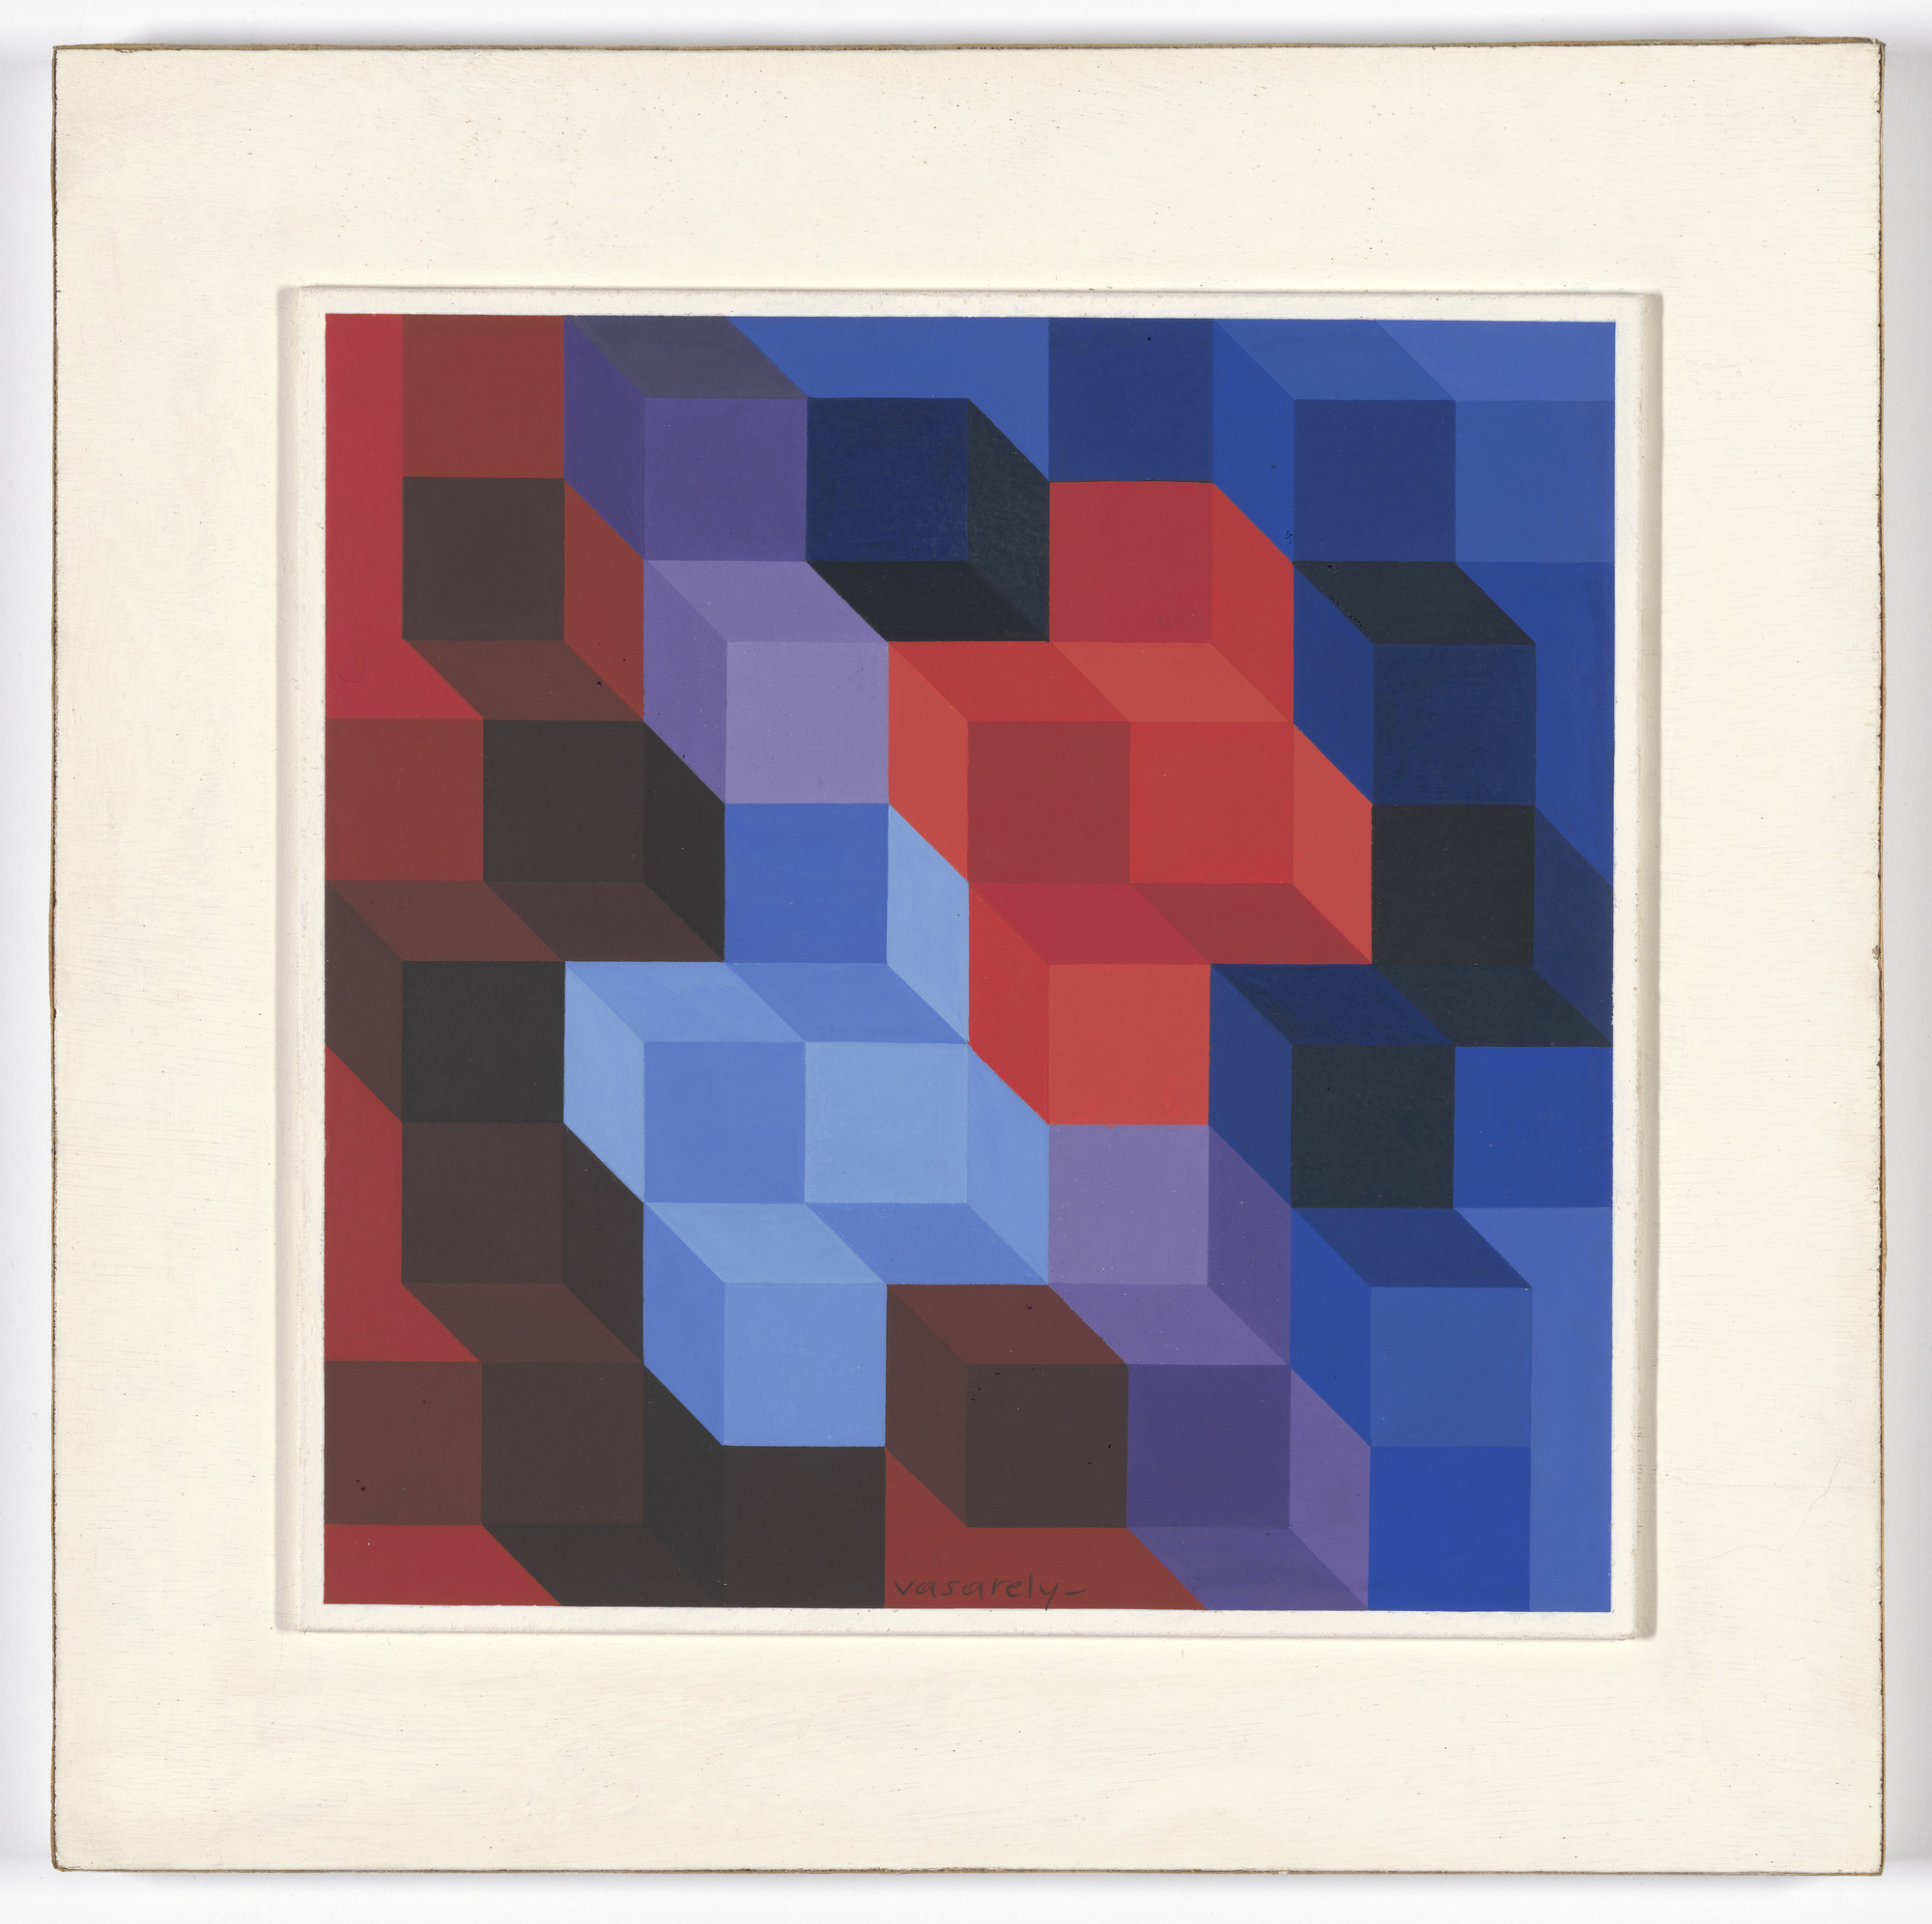 Victor Vasarely. Study for Deuton RB. 1966. Gouache on paper, 9 7⁄8 × 9 7/8ʺ (25.1 × 25.1 cm). Gift of Mrs. Lily Auchincloss. © 2016 Artists Rights Society (ARS), New York / ADAGP, Paris